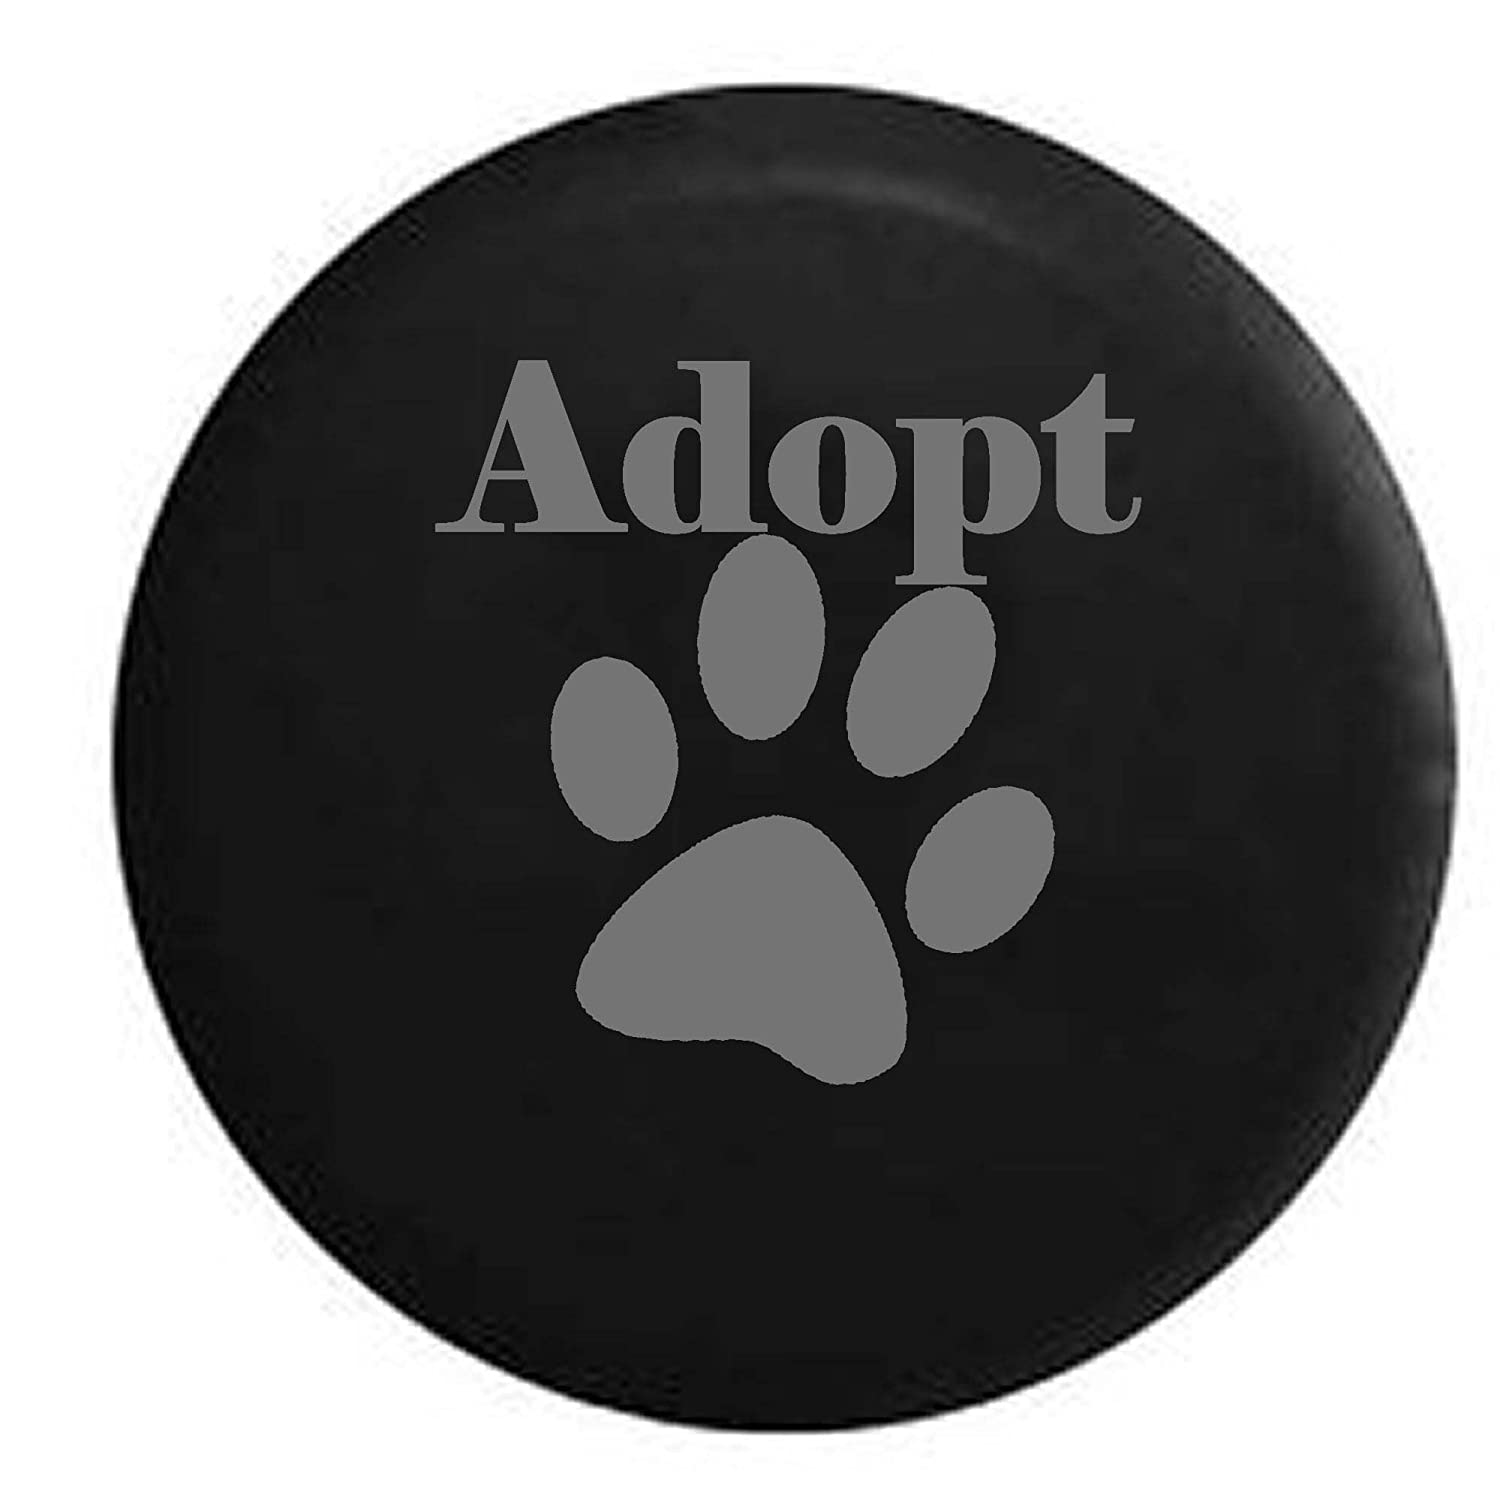 Dog Lover Paw Print Rescue Spare Tire Cover Black 29 in Pike Outdoors Adopt